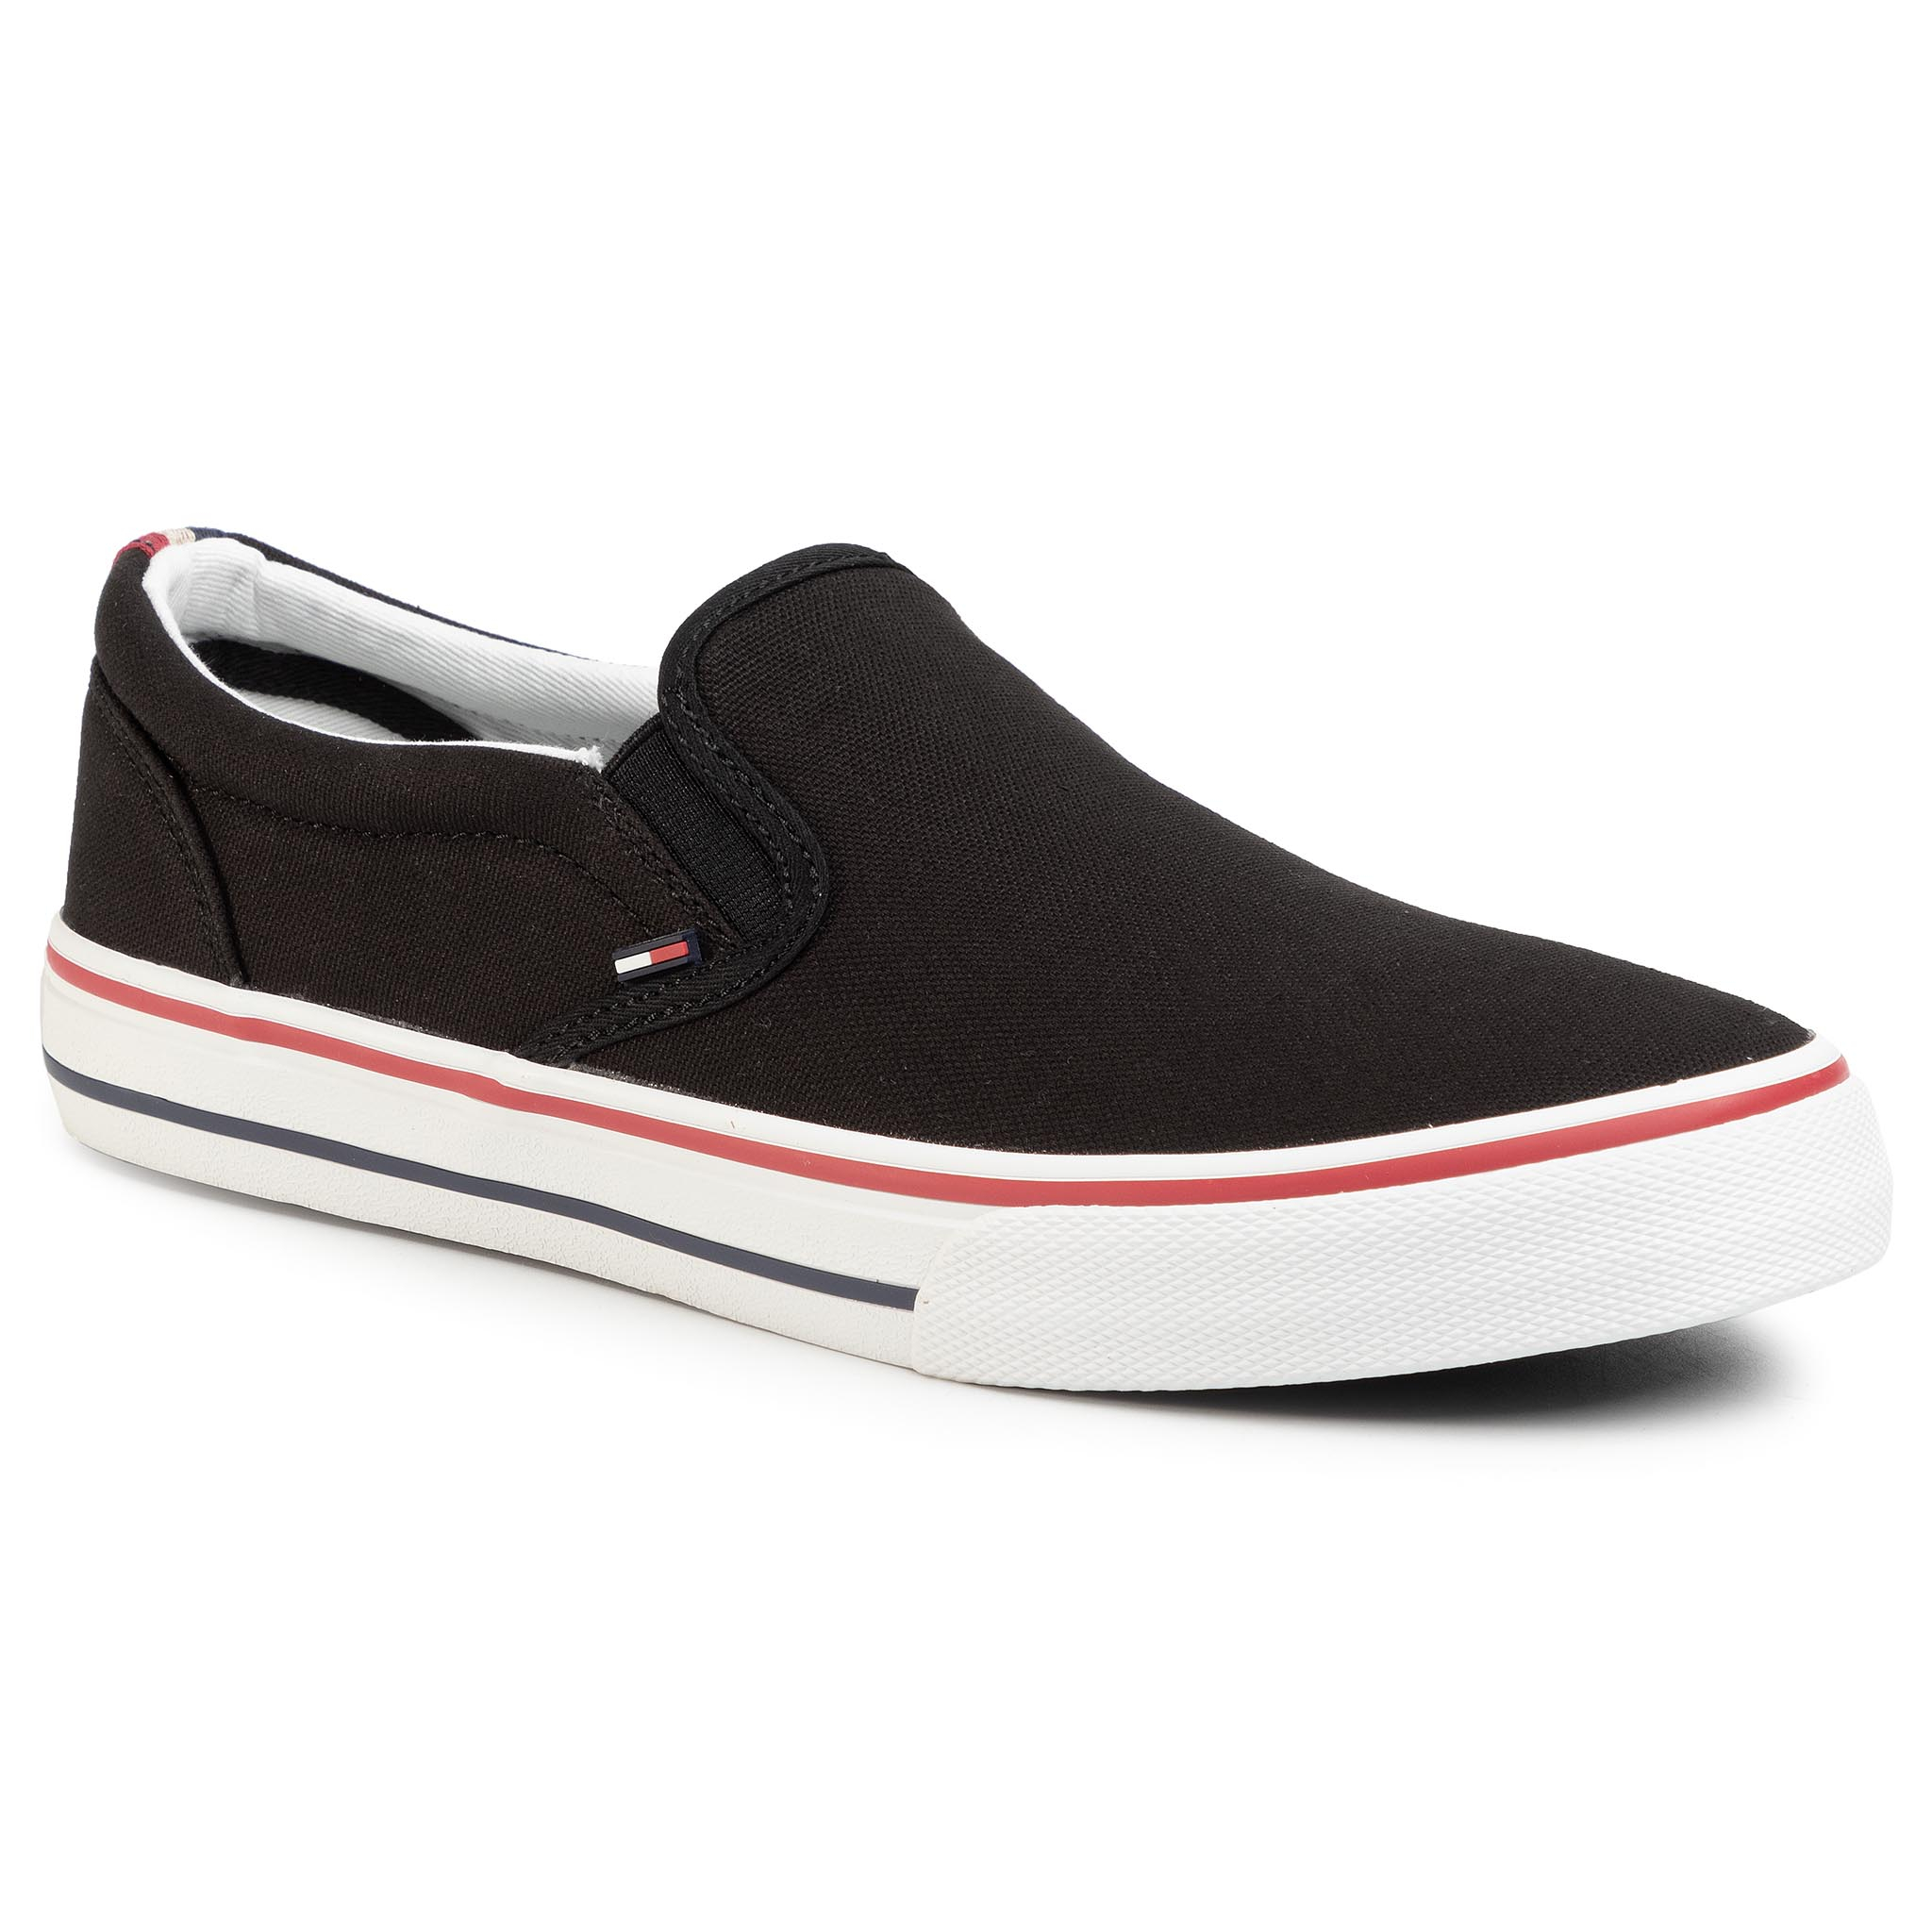 Teniși Tommy Jeans - Textile Slip On Em0em00002 Black 990 imagine epantofi.ro 2021